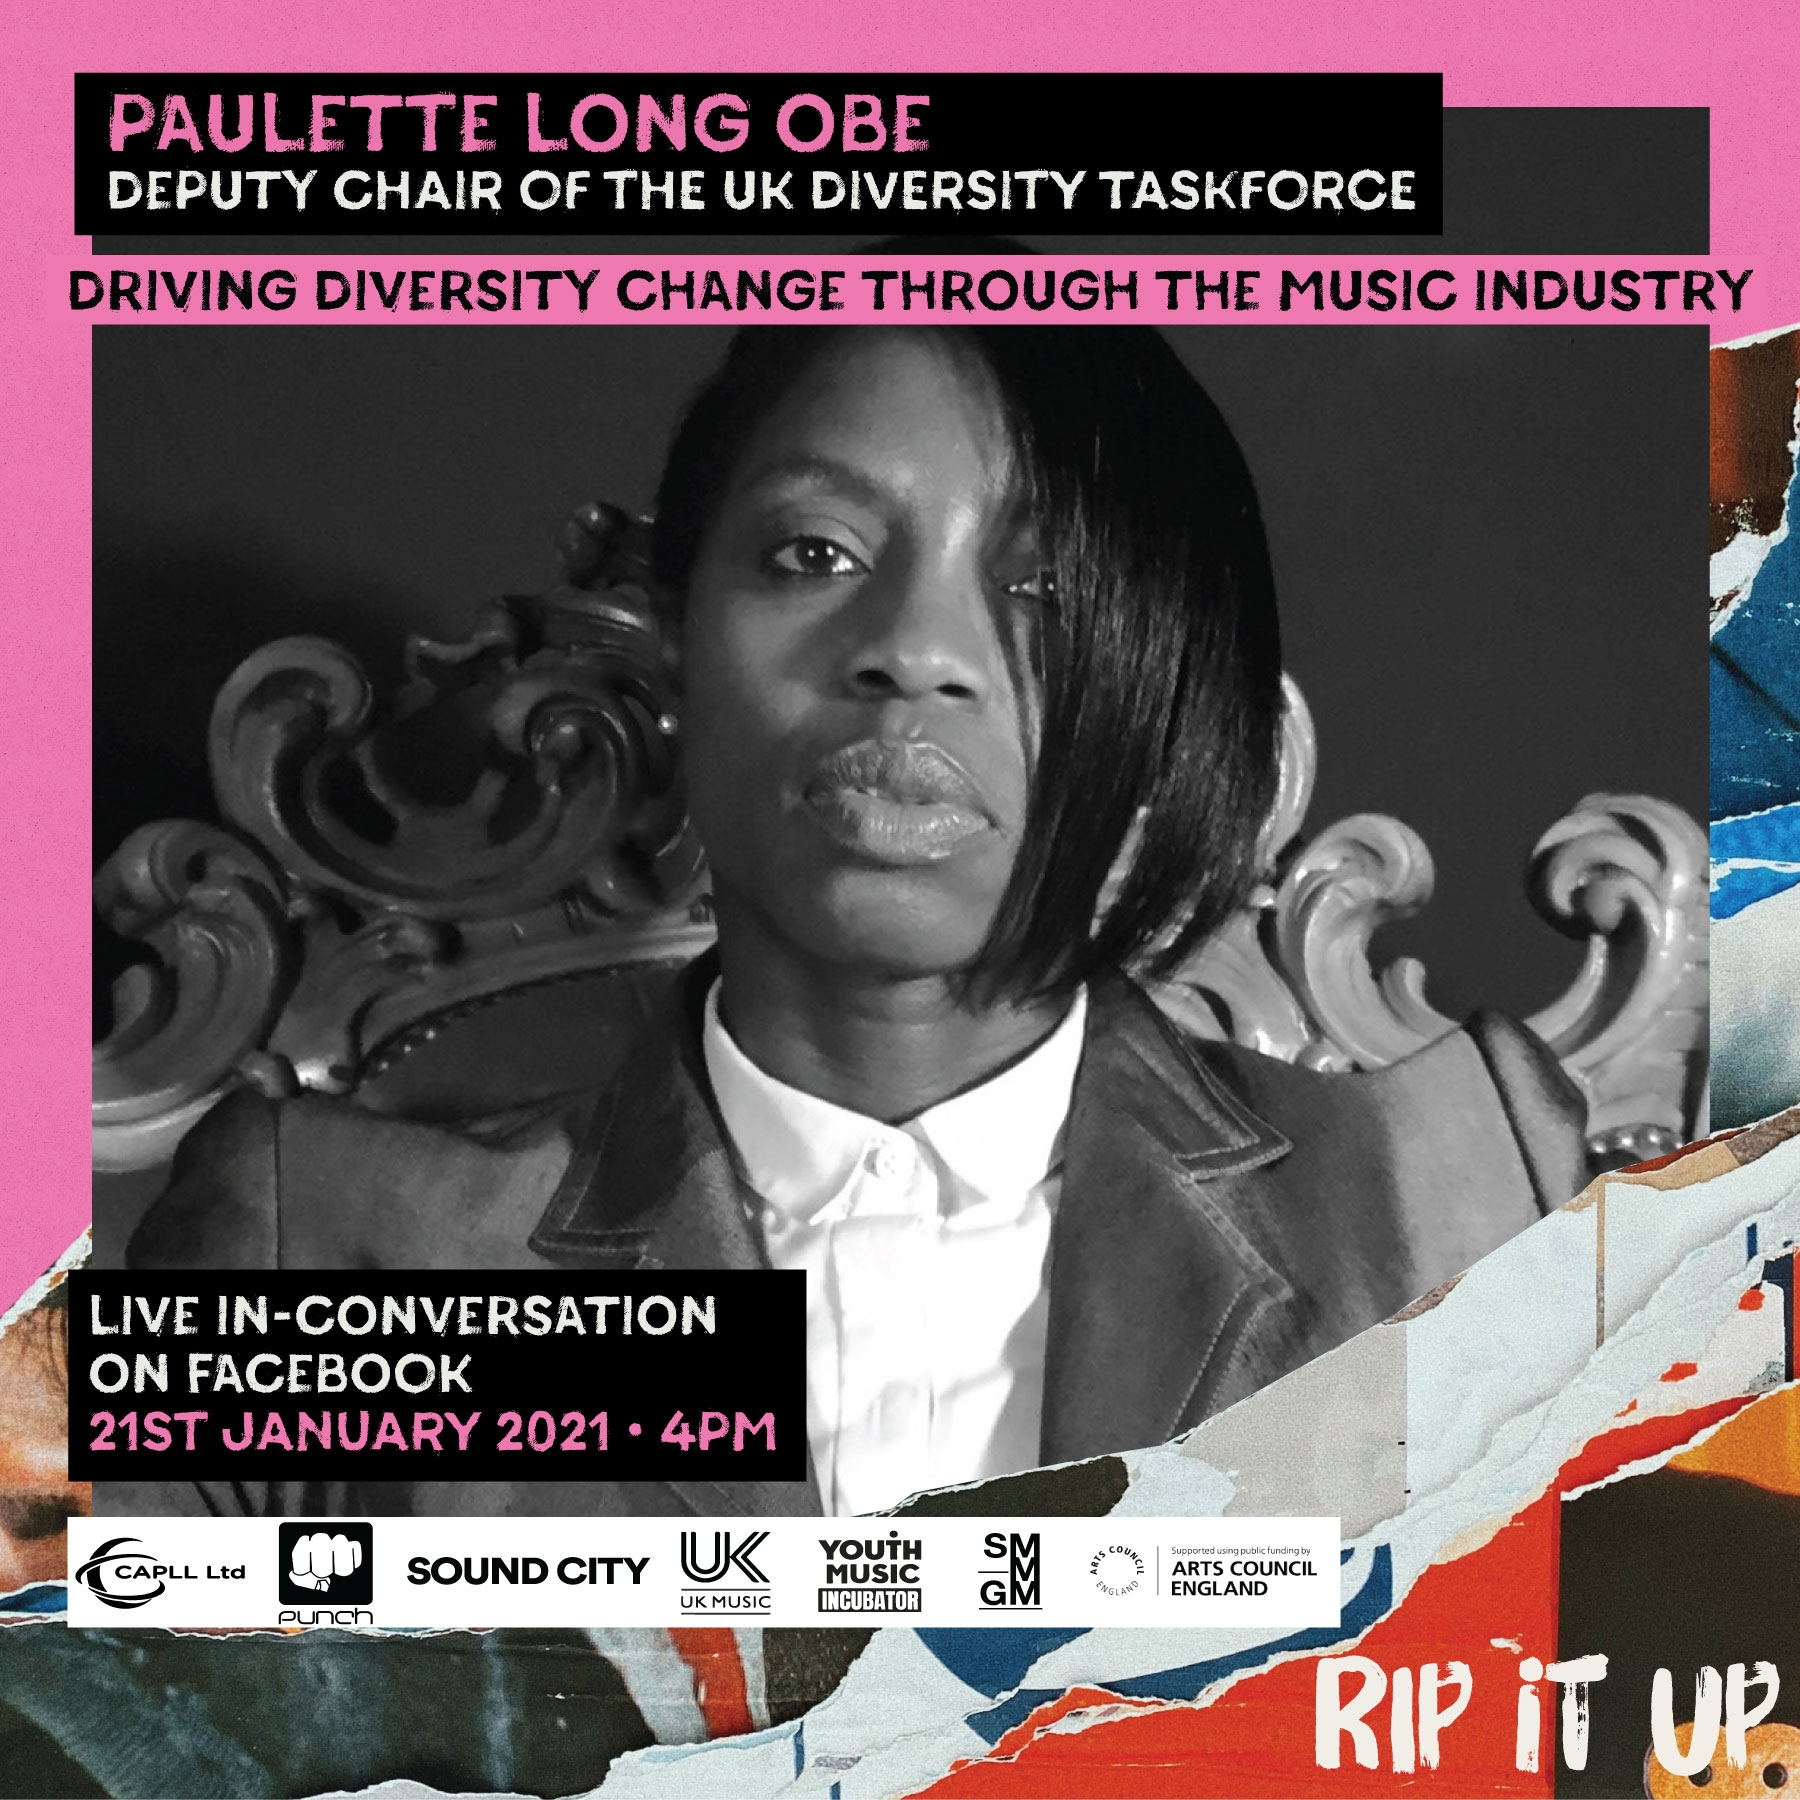 Driving Diversity Change Through The Music Industry Report